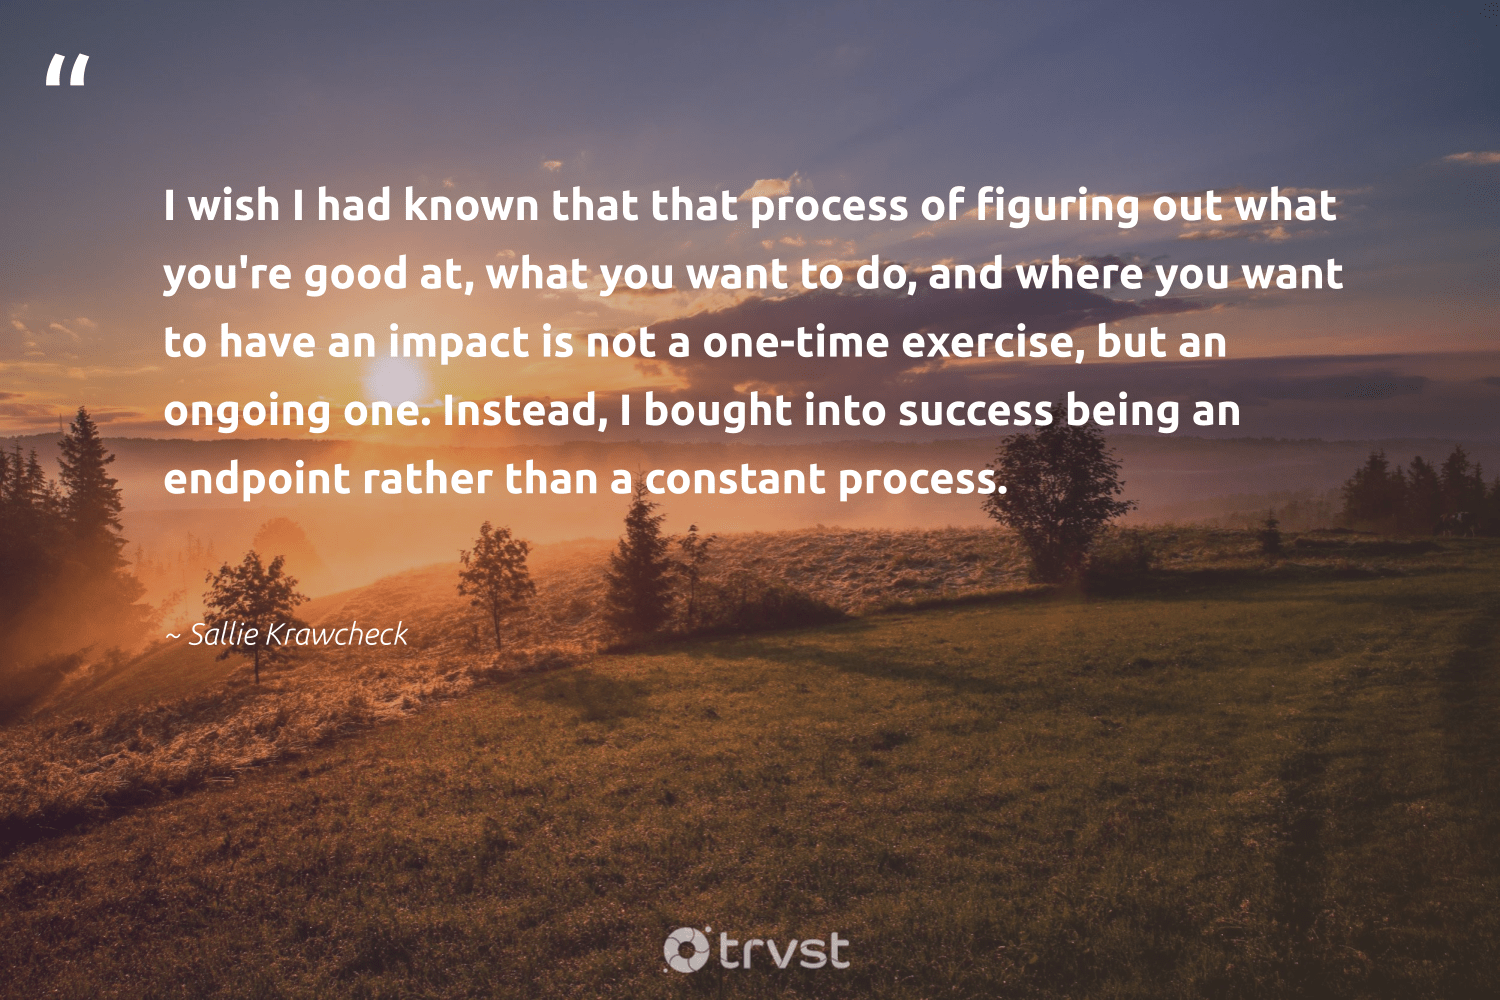 """""""I wish I had known that that process of figuring out what you're good at, what you want to do, and where you want to have an impact is not a one-time exercise, but an ongoing one. Instead, I bought into success being an endpoint rather than a constant process.""""  - Sallie Krawcheck #trvst #quotes #impact #exercise #success #cardio #ethicalbusiness #togetherwecan #beinspired #fitness #weareallone #changemakers"""